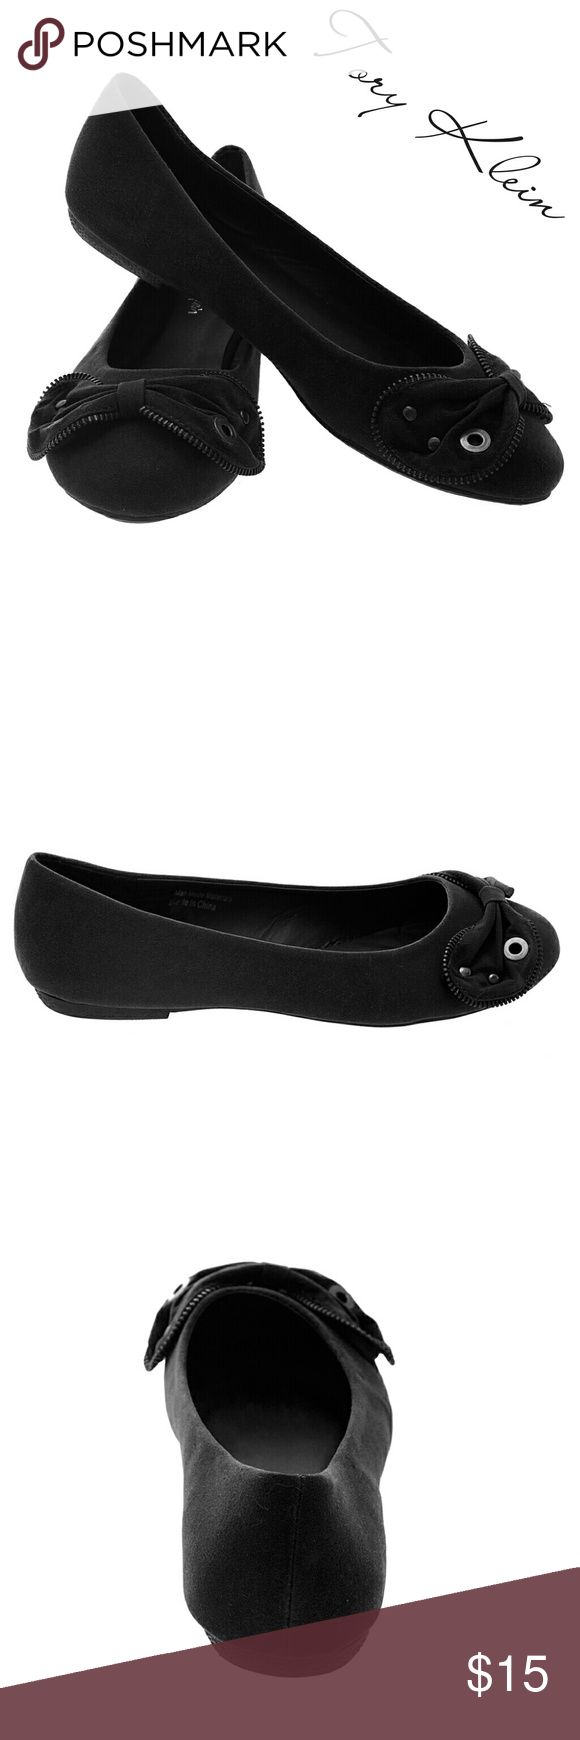 Tory K Zipper Bow Ballerina Flats, b-1316, Black Brand new Tory Klein woman ballerina flats in PU leather with a fancy zipper outlined bow in the front. Bow has metal decoration on it. Lightly cushioned sole, very comfortable, decorated bottom sole. Larger sizes run small. Size 8 measures 9.5 inches in length, all half sizes are in 1/4 inch increments of each other. A true statement in ladies shoes fashion! Tory K  Shoes Flats & Loafers